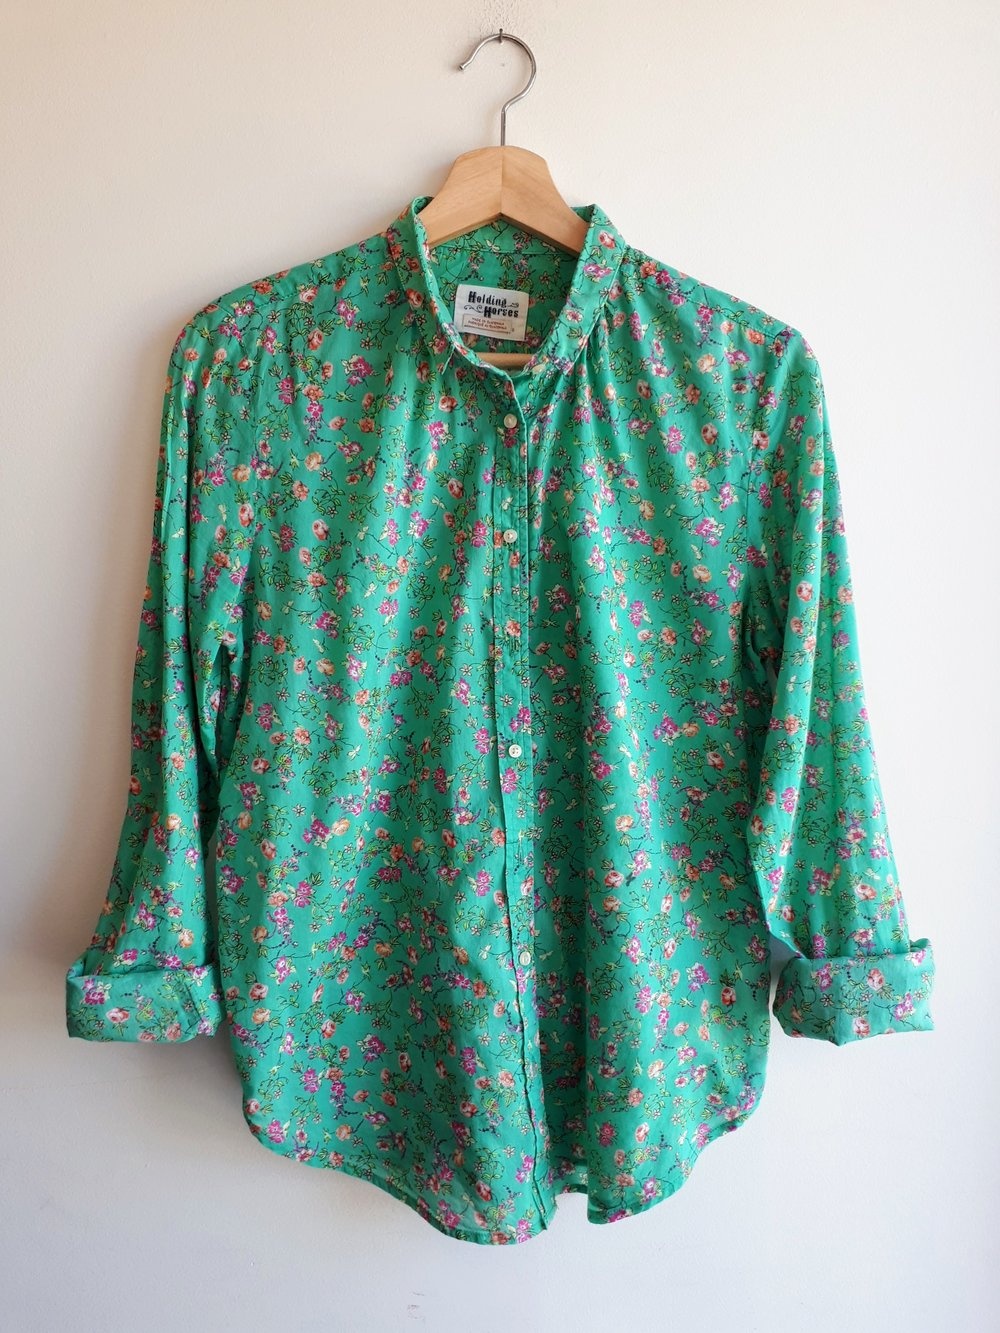 Holding Horses top; Size M, $26